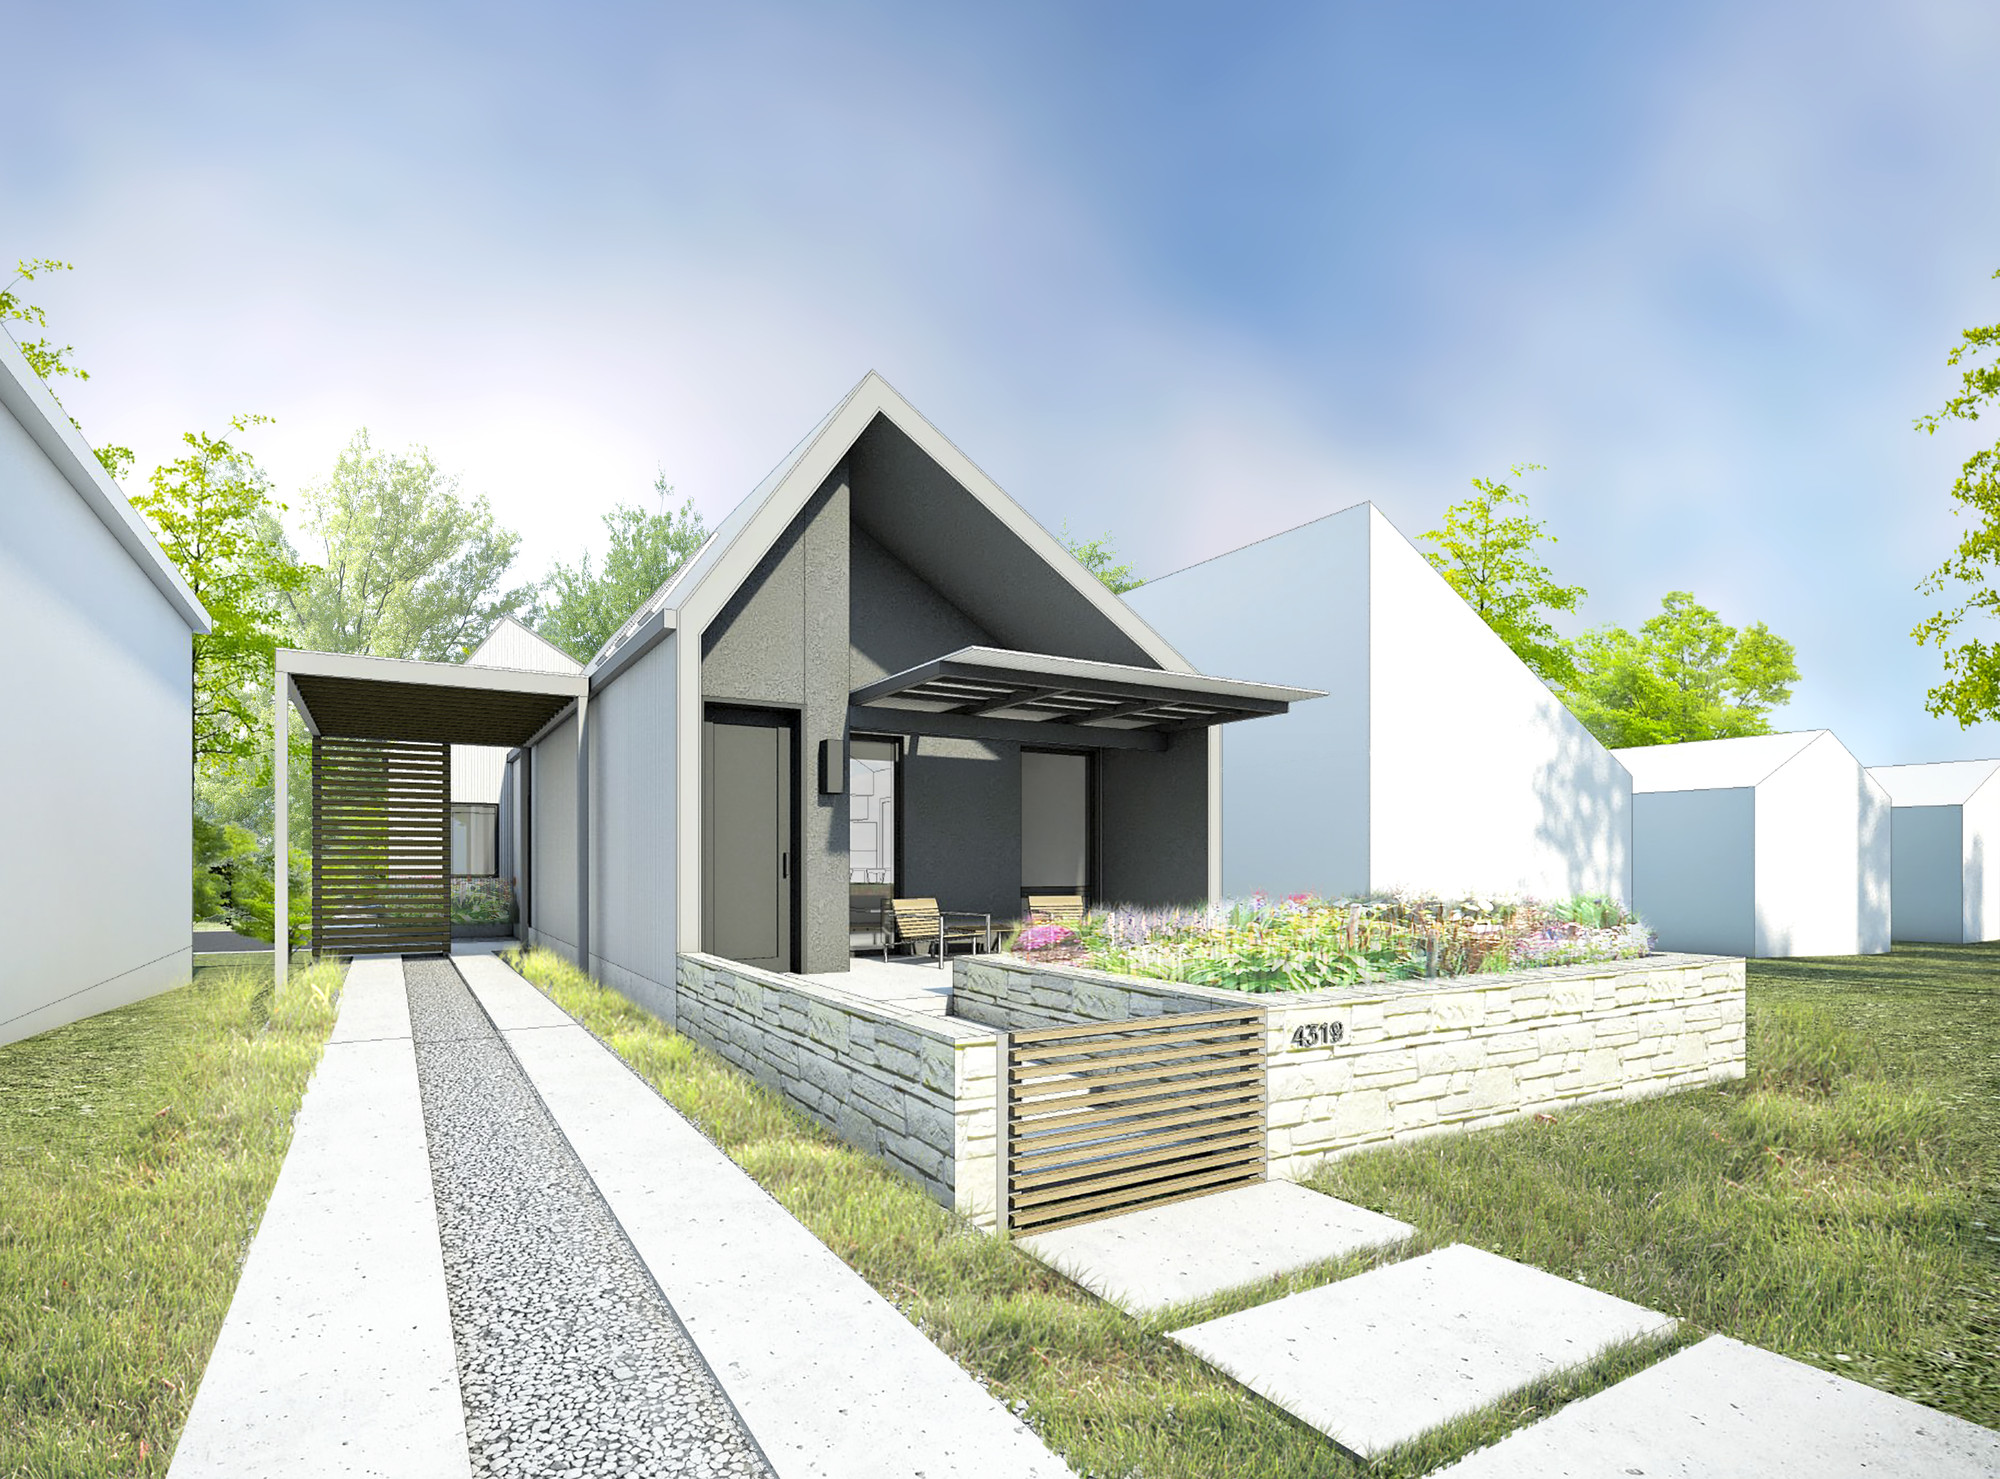 Make It Right Releases Six SingleFamily House Designs For Manheim - Single family home designs